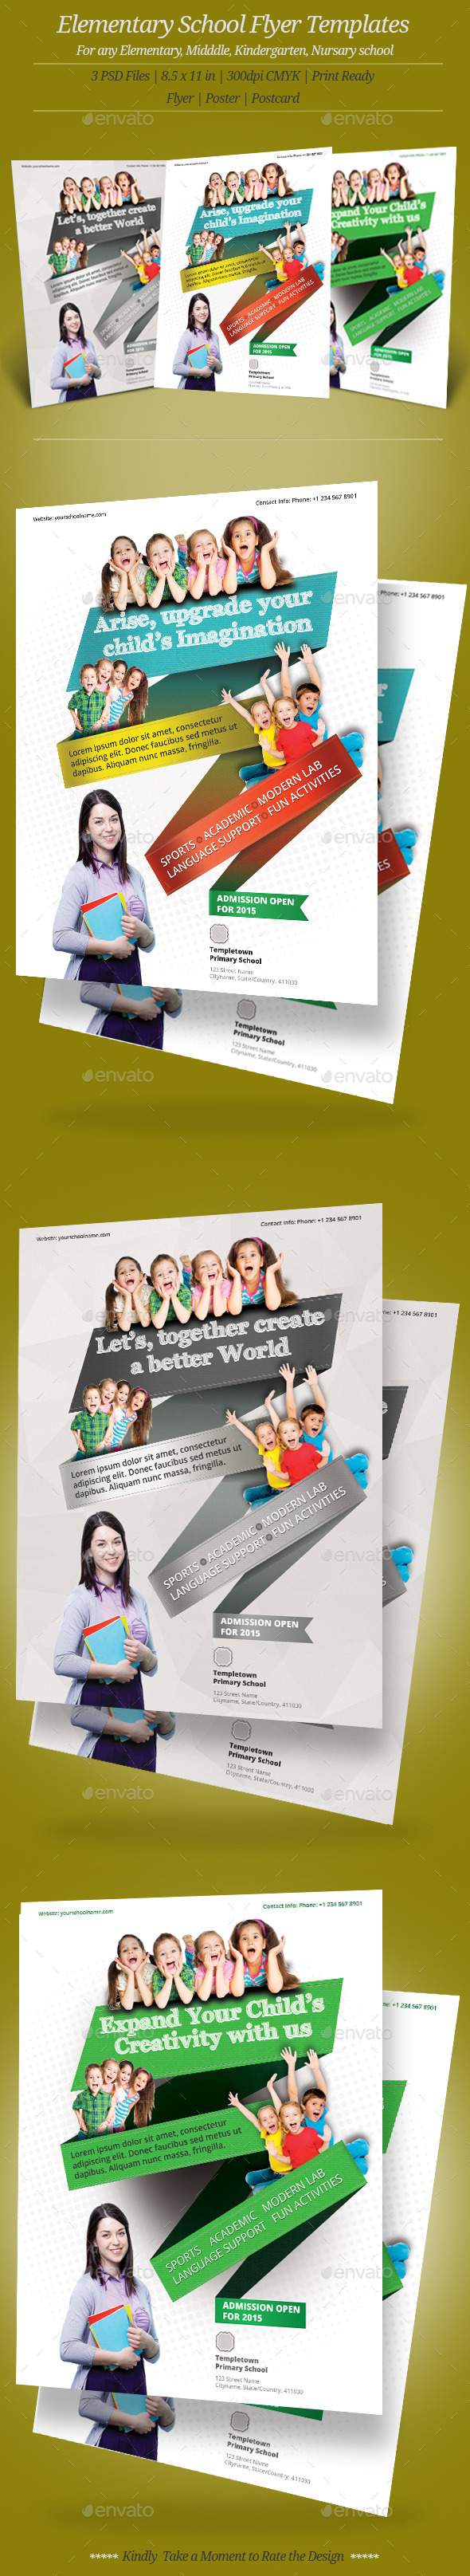 31+ Daycare Flyer Templates Free Example Design Ideas